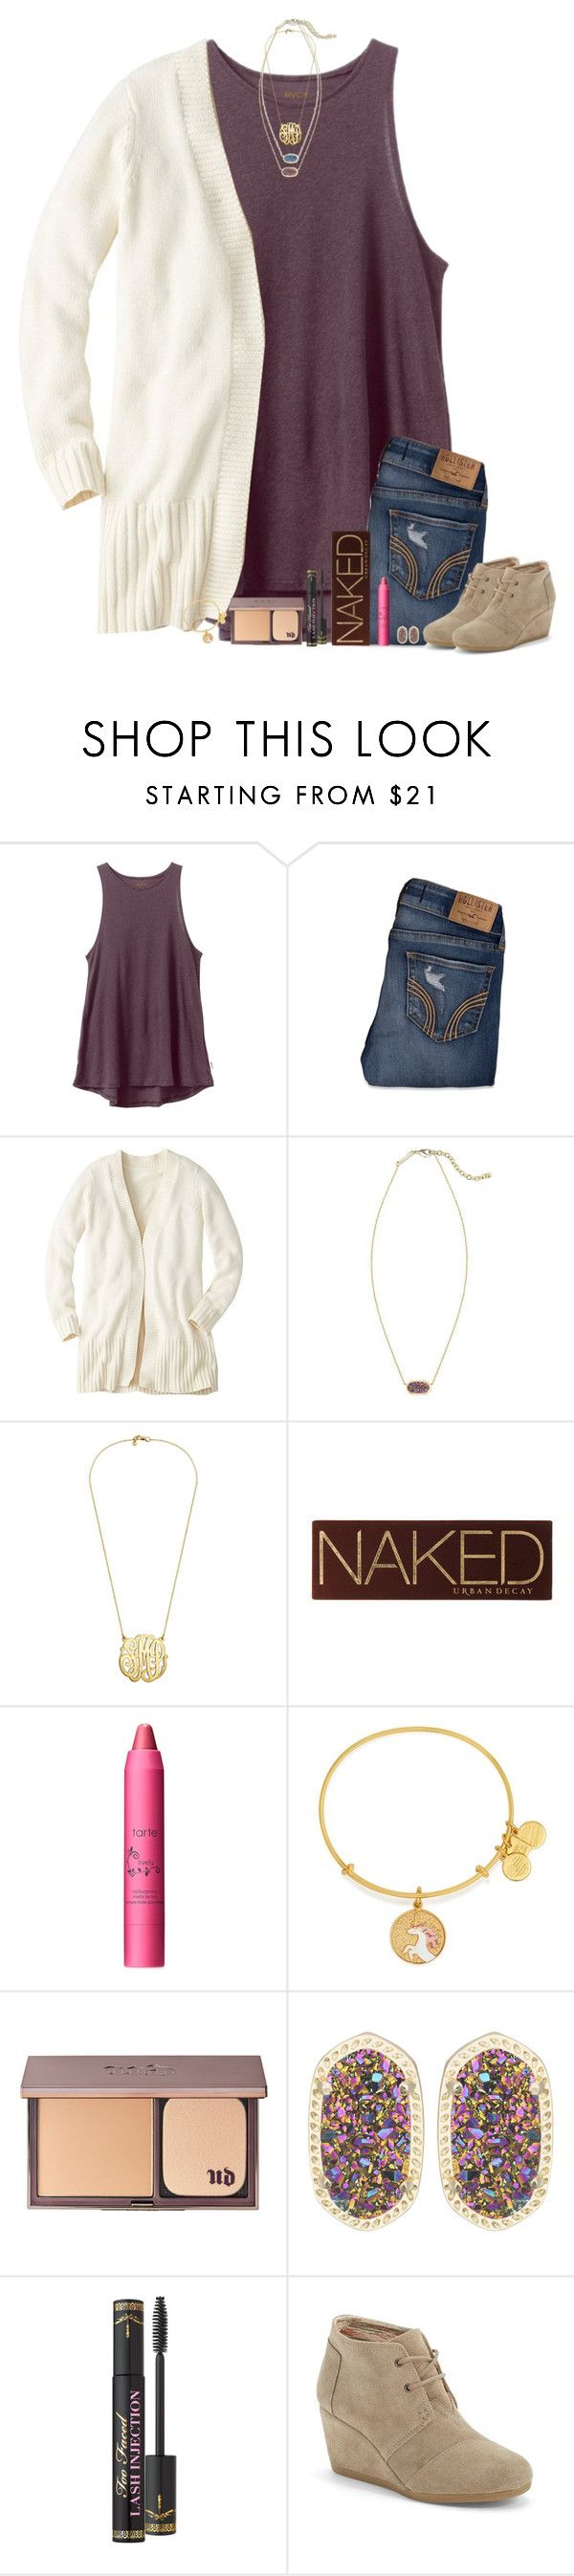 """""""•I promise someone will give you all you want, will give you all you need•"""" by bloom17 ❤ liked on Polyvore featuring RVCA, Hollister Co., Kendra Scott, Urban Decay, tarte, Alex and Ani, Too Faced Cosmetics, TOMS, women's clothing and women"""